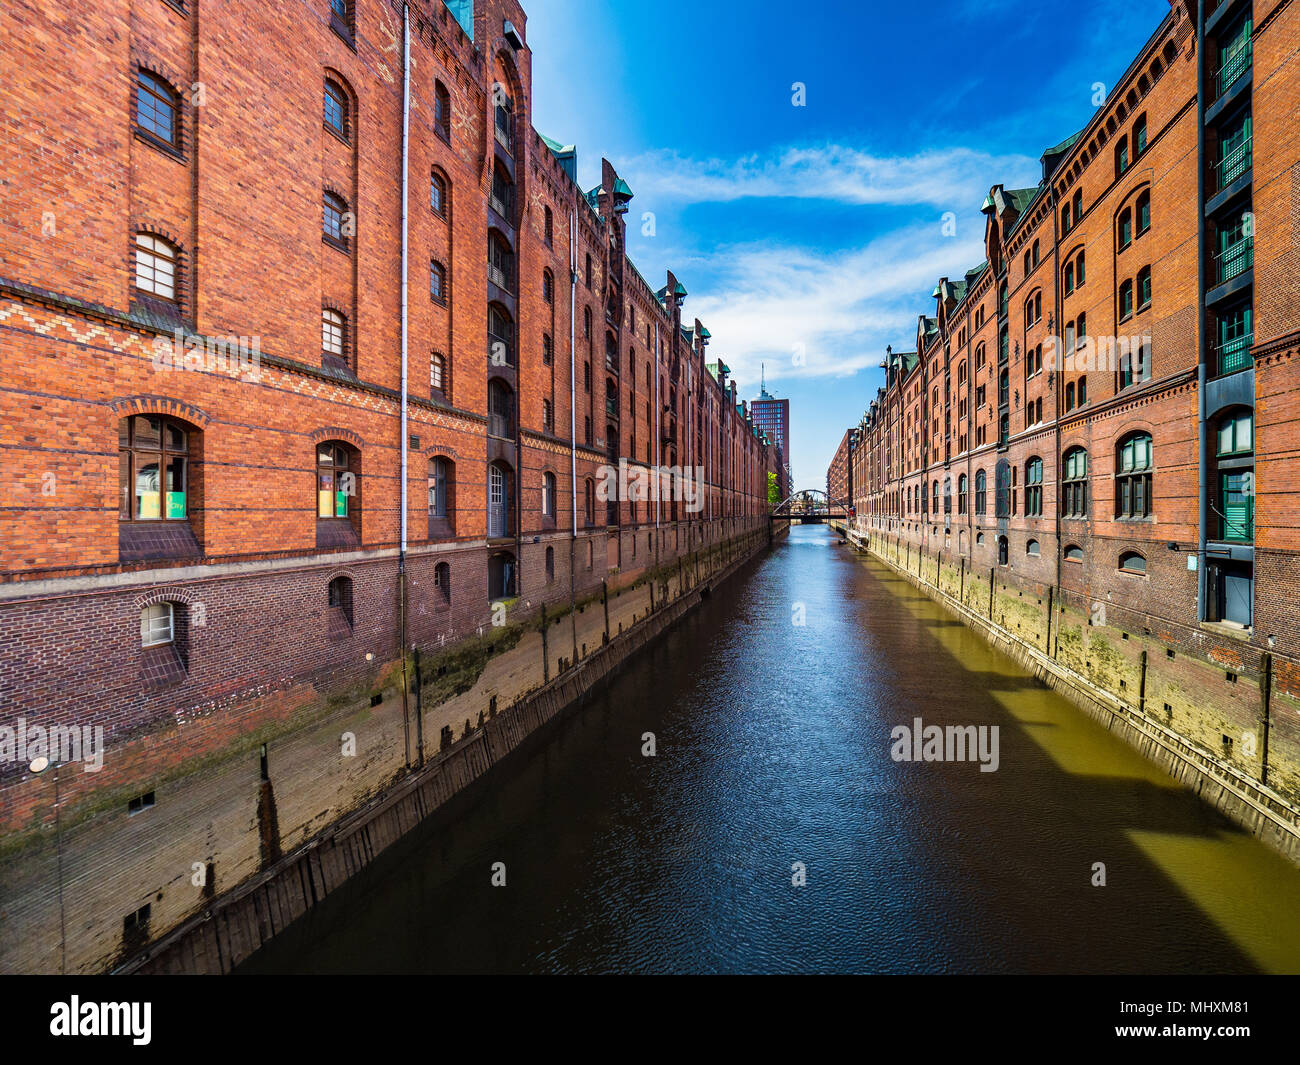 Hamburg Speicherstadt or Warehouse City / Warehouse District - one of the world's largest warehouse districts within the Hafencity quarter of the port Stock Photo